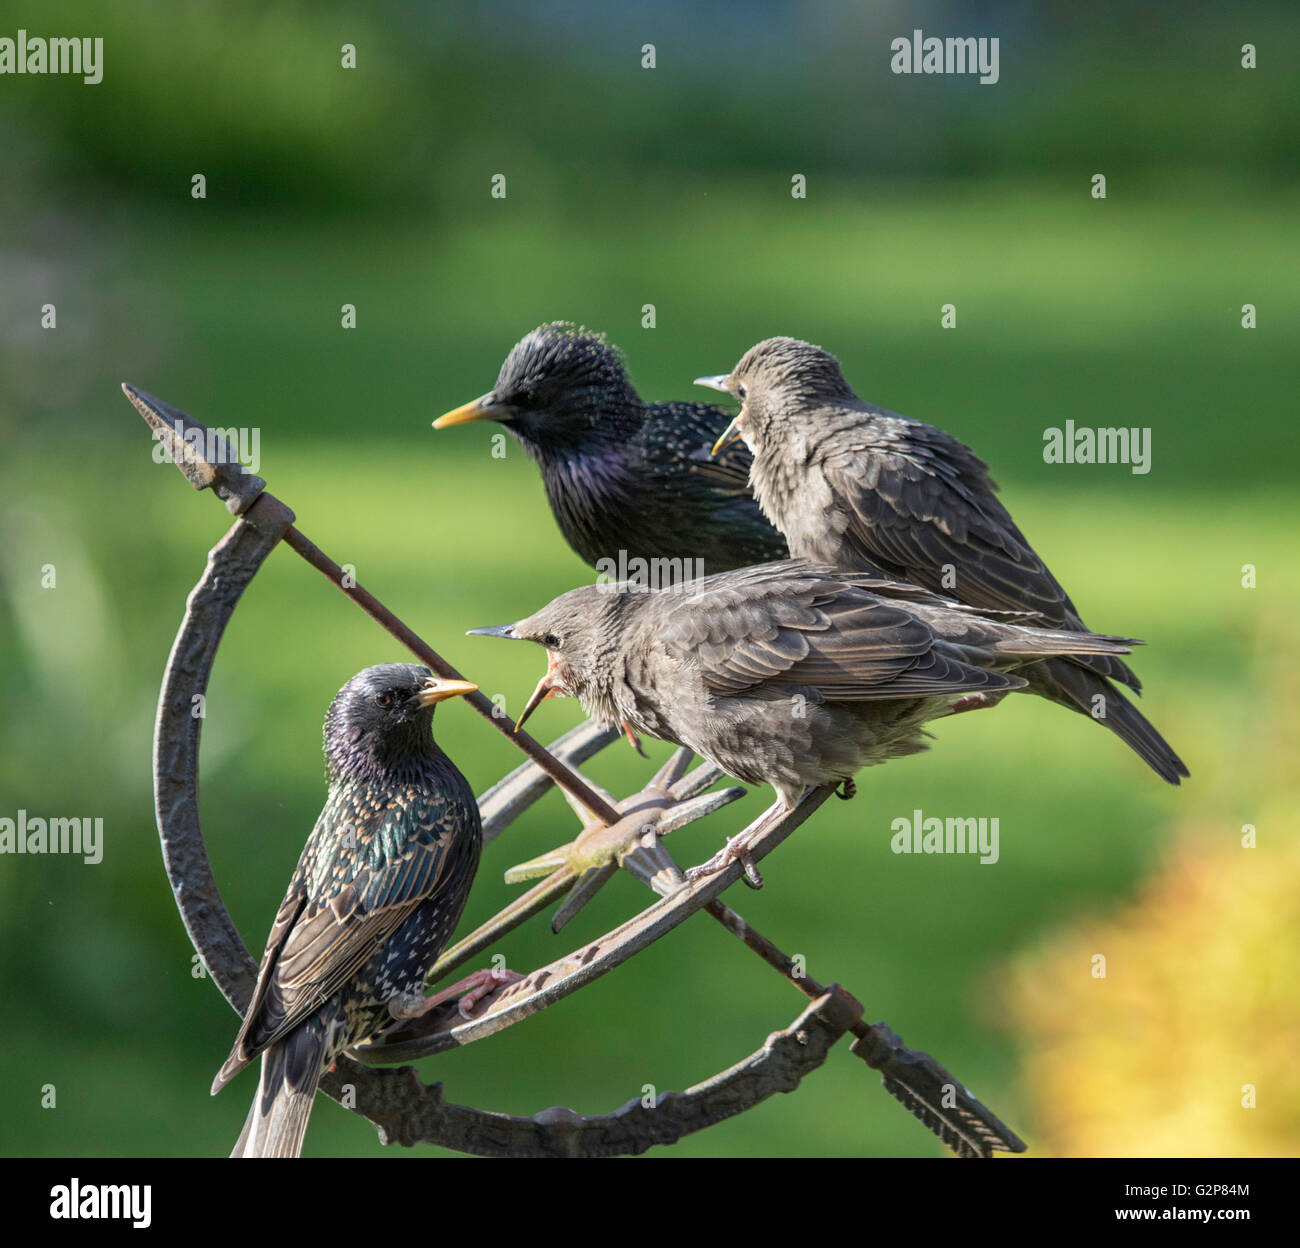 European Starlings (Sturnidae) with juveniles in a garden, England, UK - Stock Image